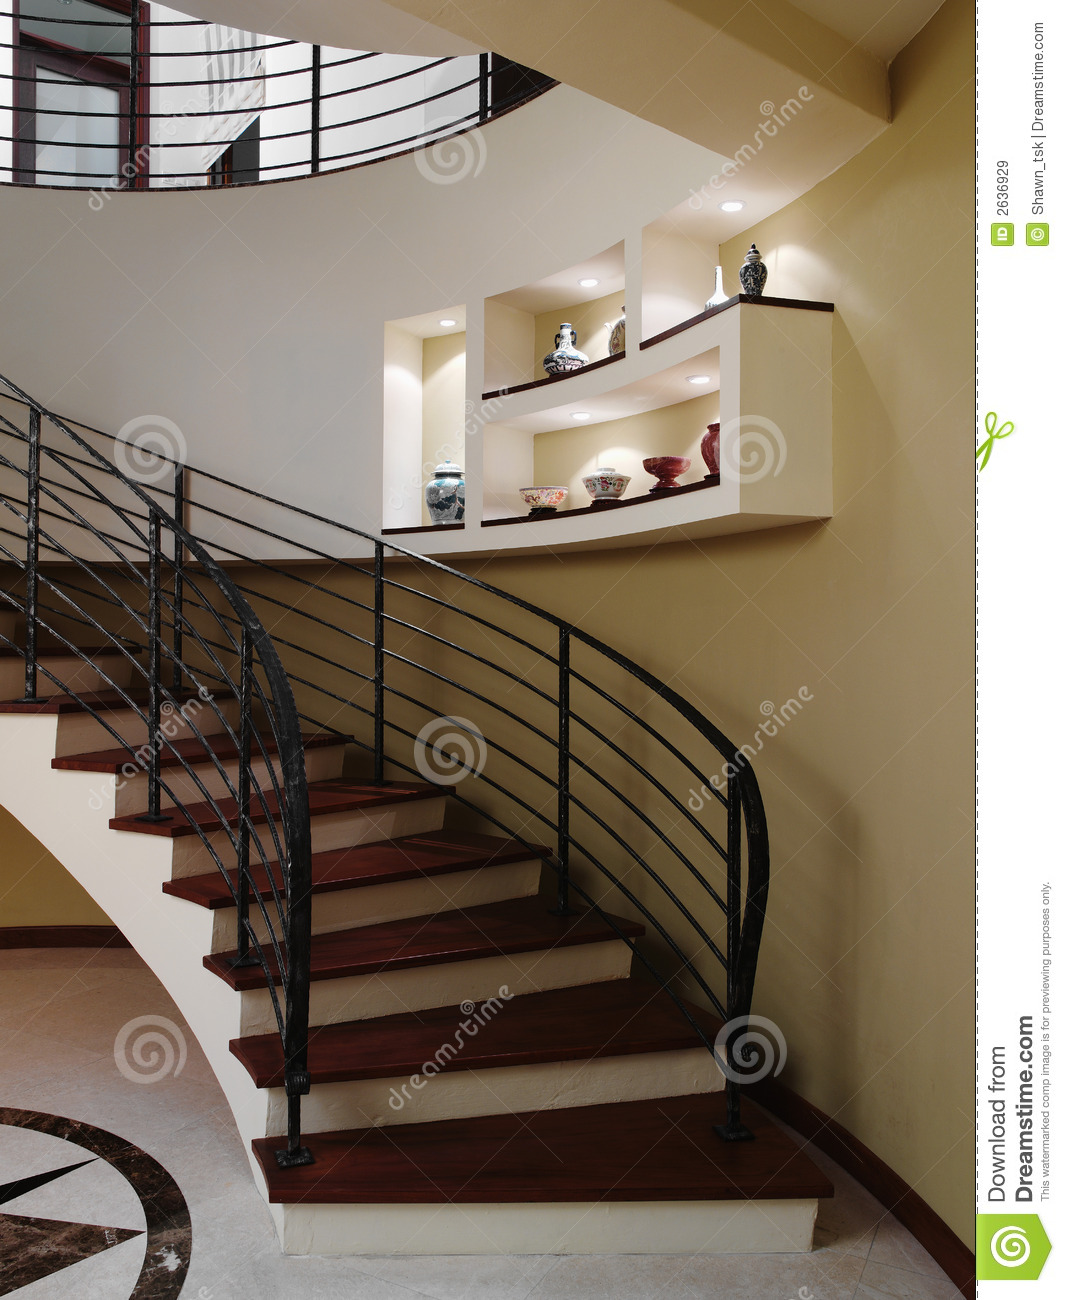 Interior design stairs royalty free stock images image for Interior staircase designs photos